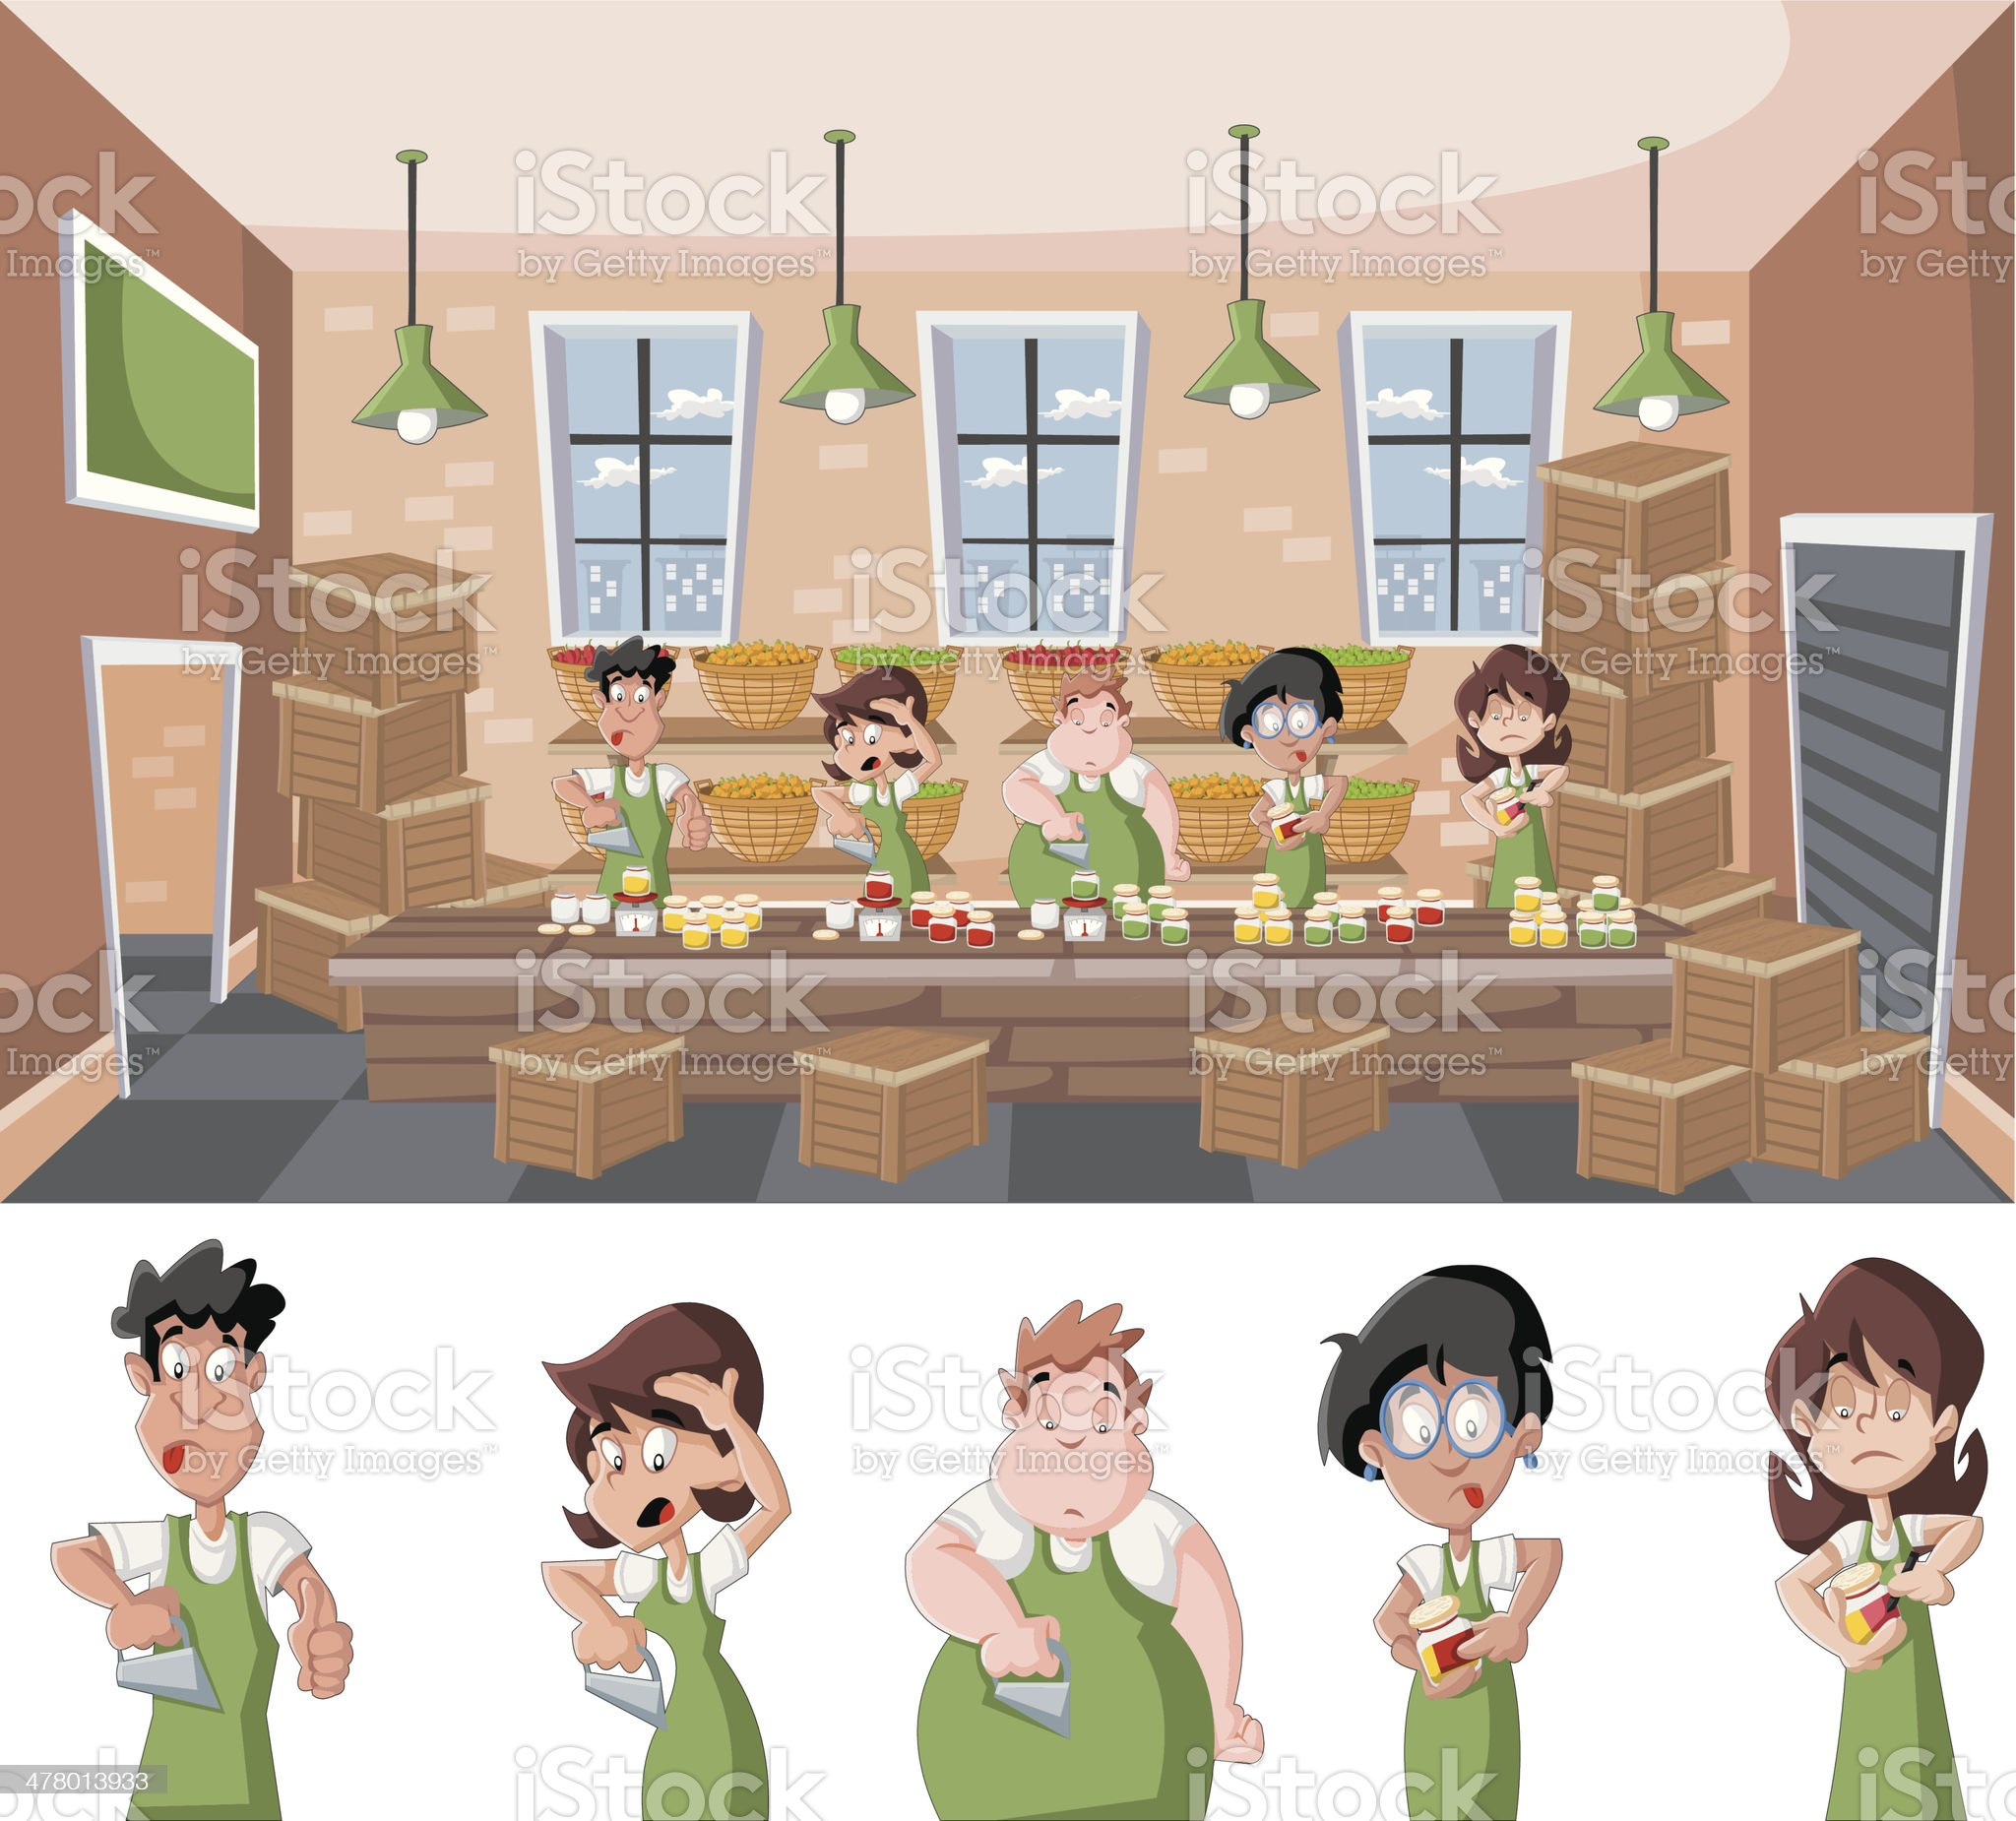 warehouse with people working royalty-free stock vector art